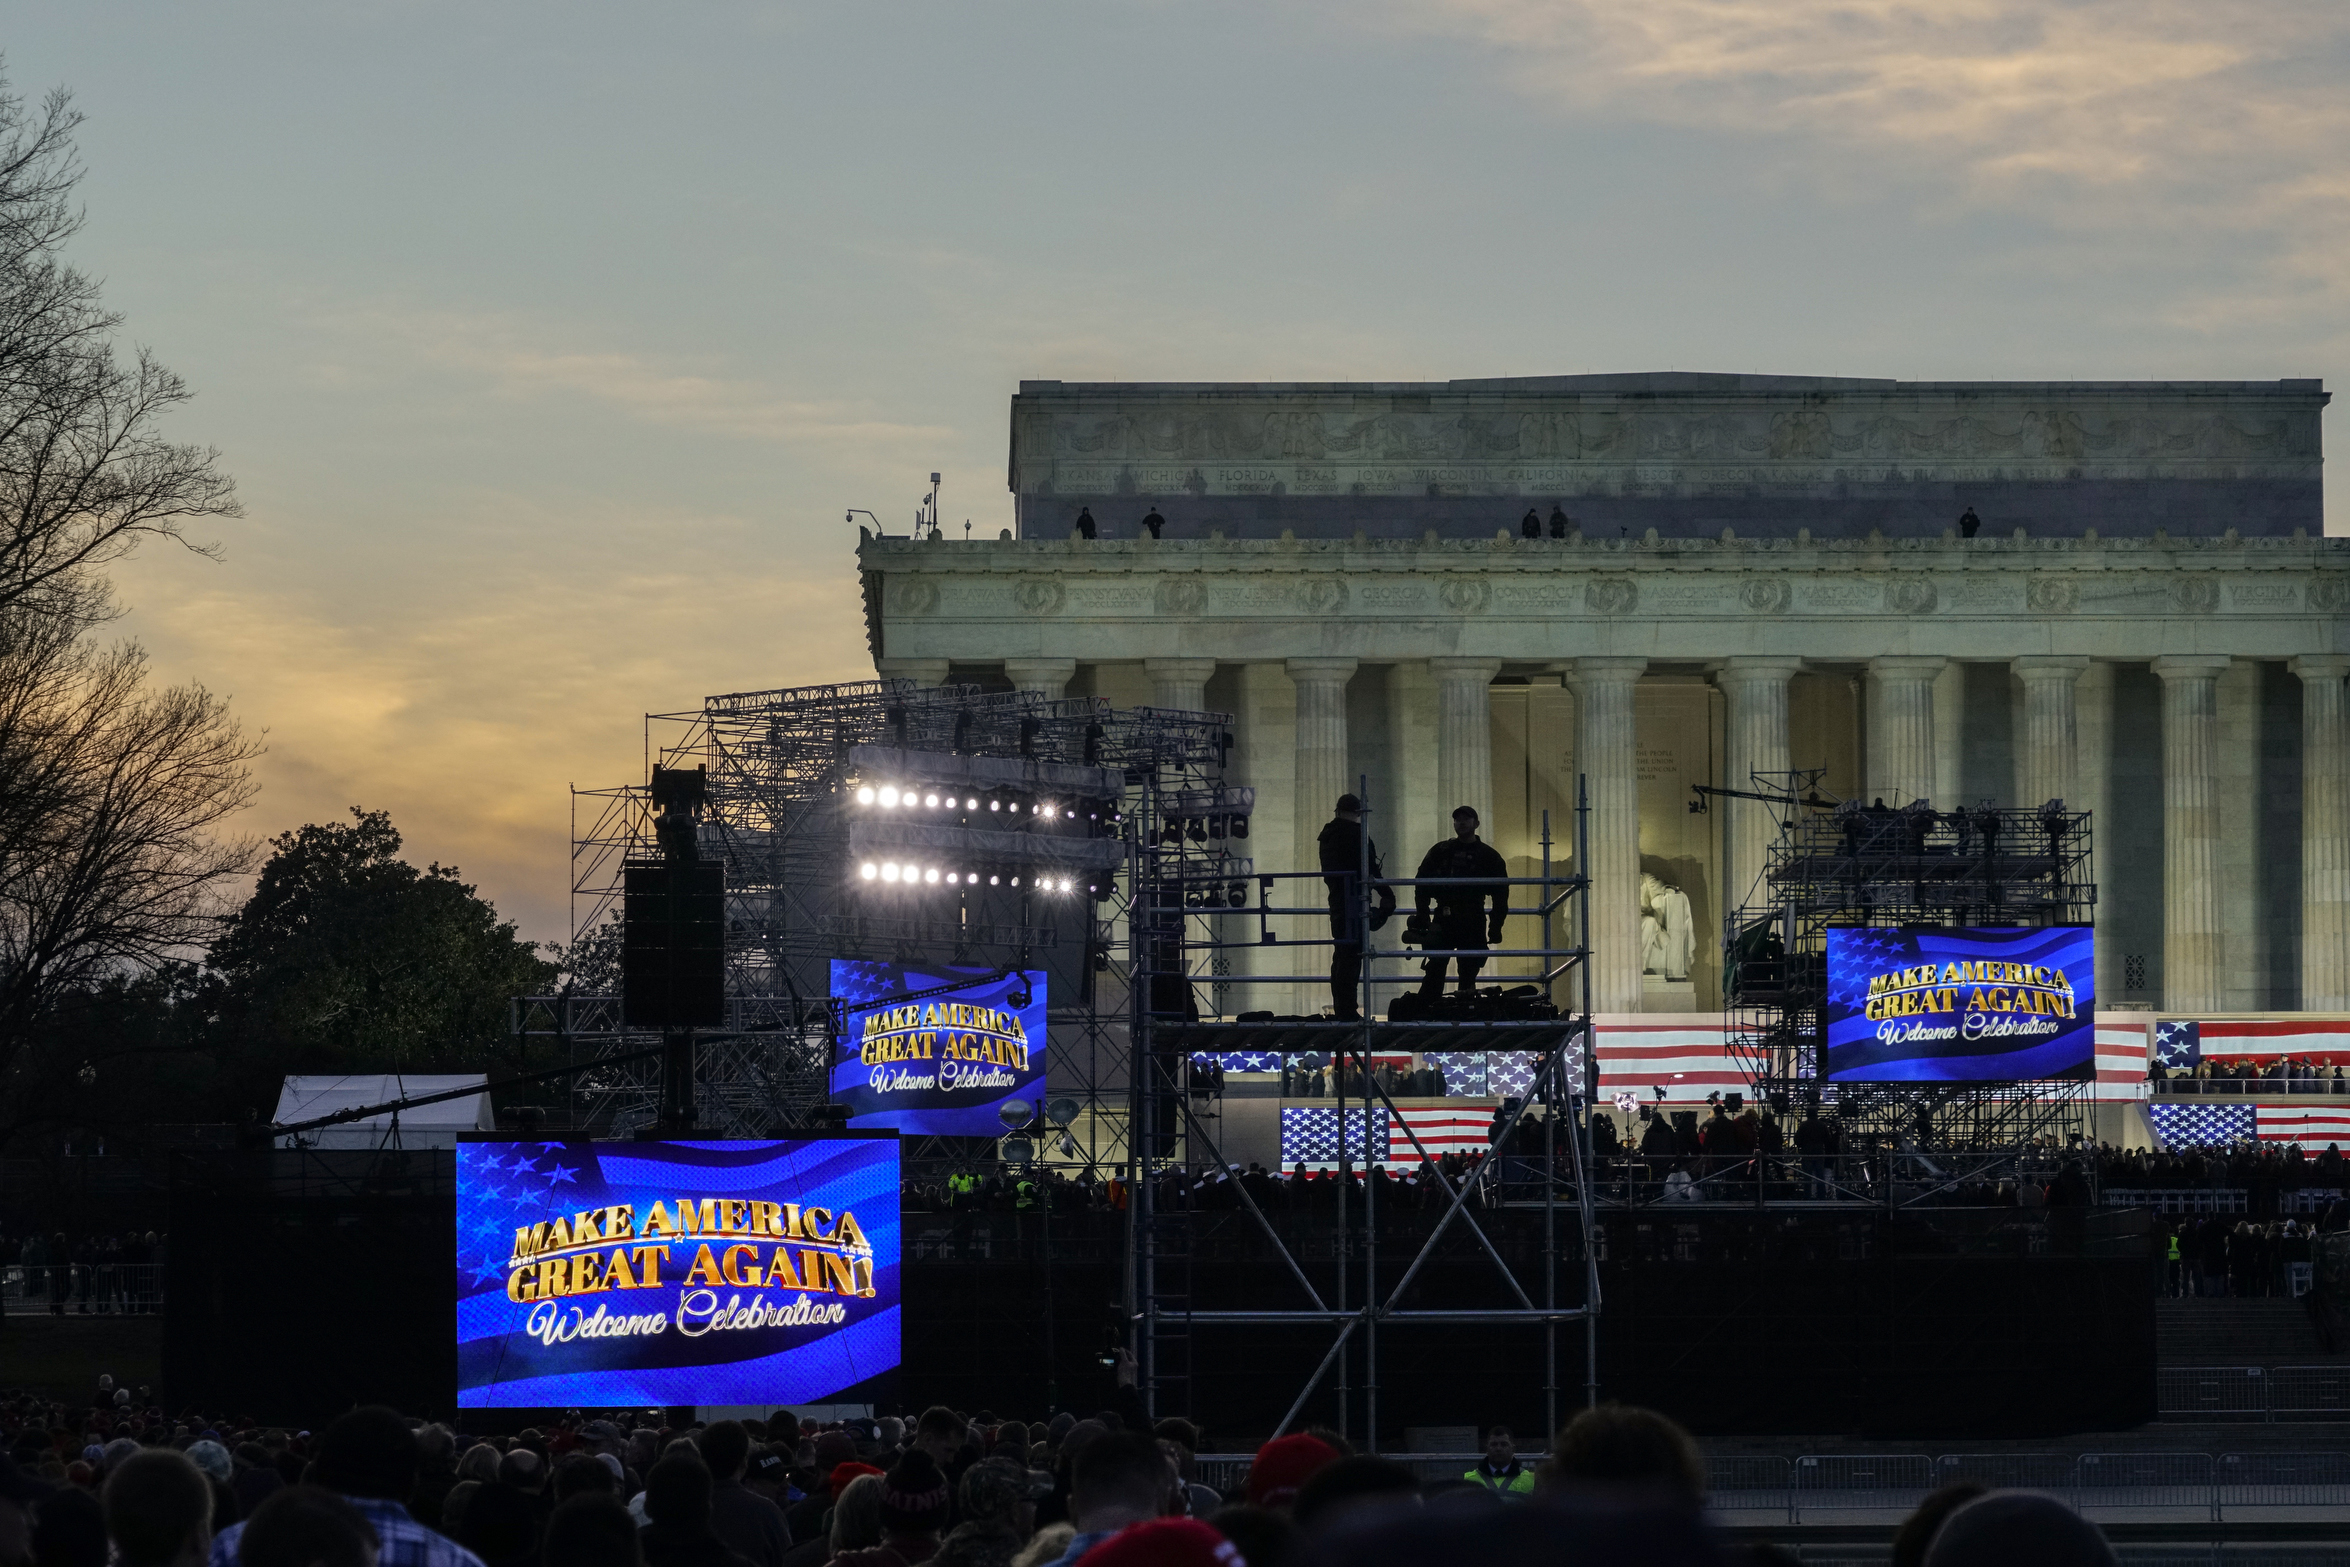 Security at the Voices of the People: Make America Great Again Welcome Concert  at the Lincoln Memorial in Washington, D.C., on Thursday, Jan. 19, 2017.